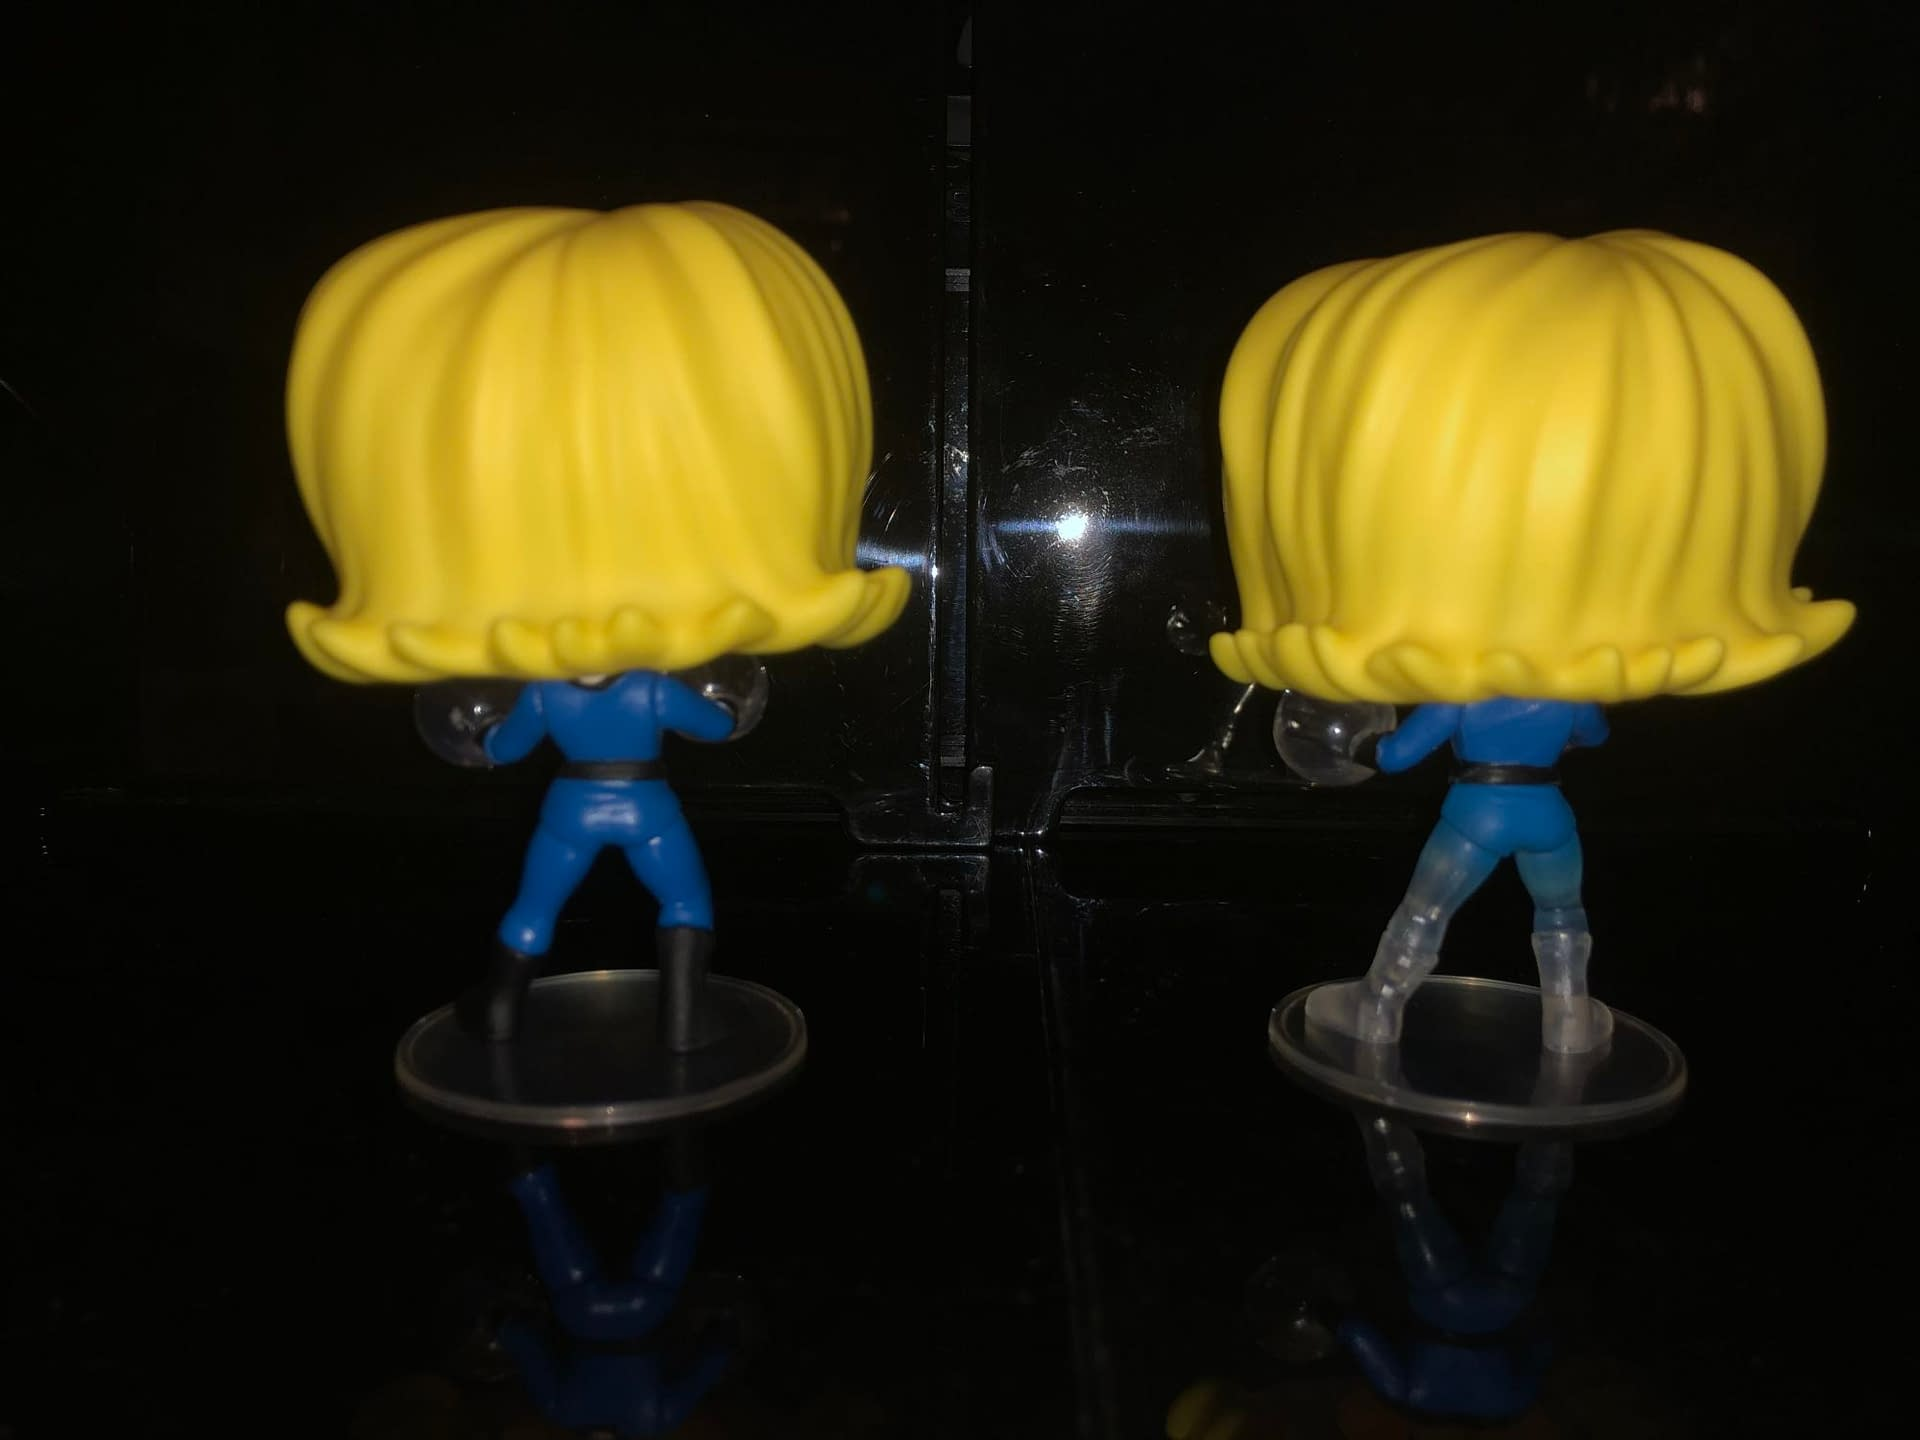 The Fantastic Four Storm Siblings Get Funko Pop Exclusives [Review]